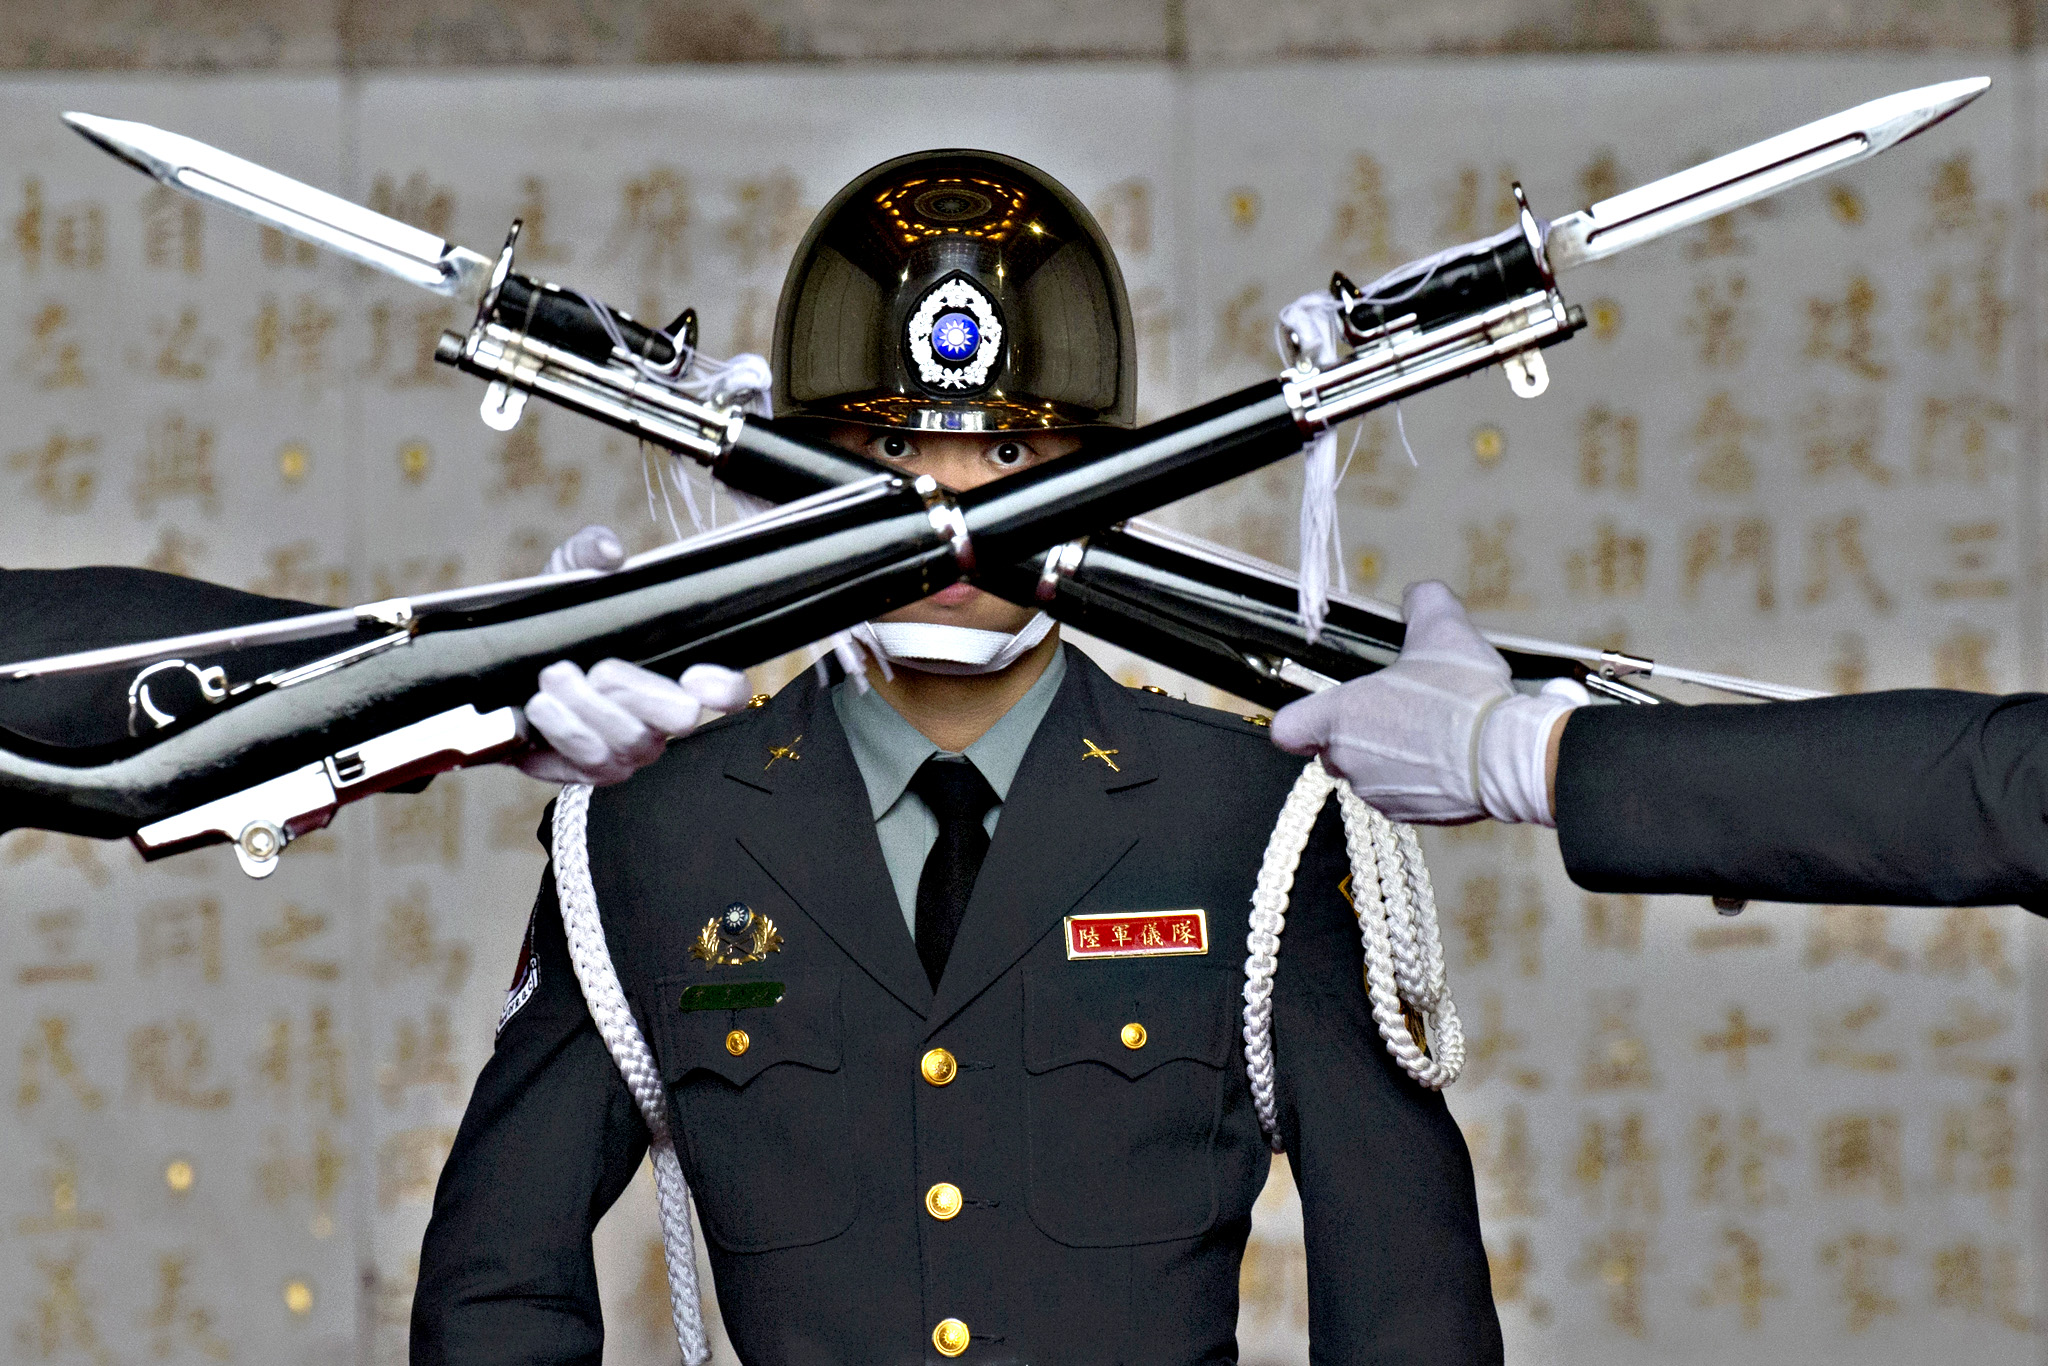 A member of the Taiwanese honor guard takes part in a change of duty ceremony at the Chiang Kai-shek Memorial Hall in Taipei, Taiwan, Friday, Jan. 15, 2016. Taiwan will hold its presidential election on Saturday, Jan. 16.